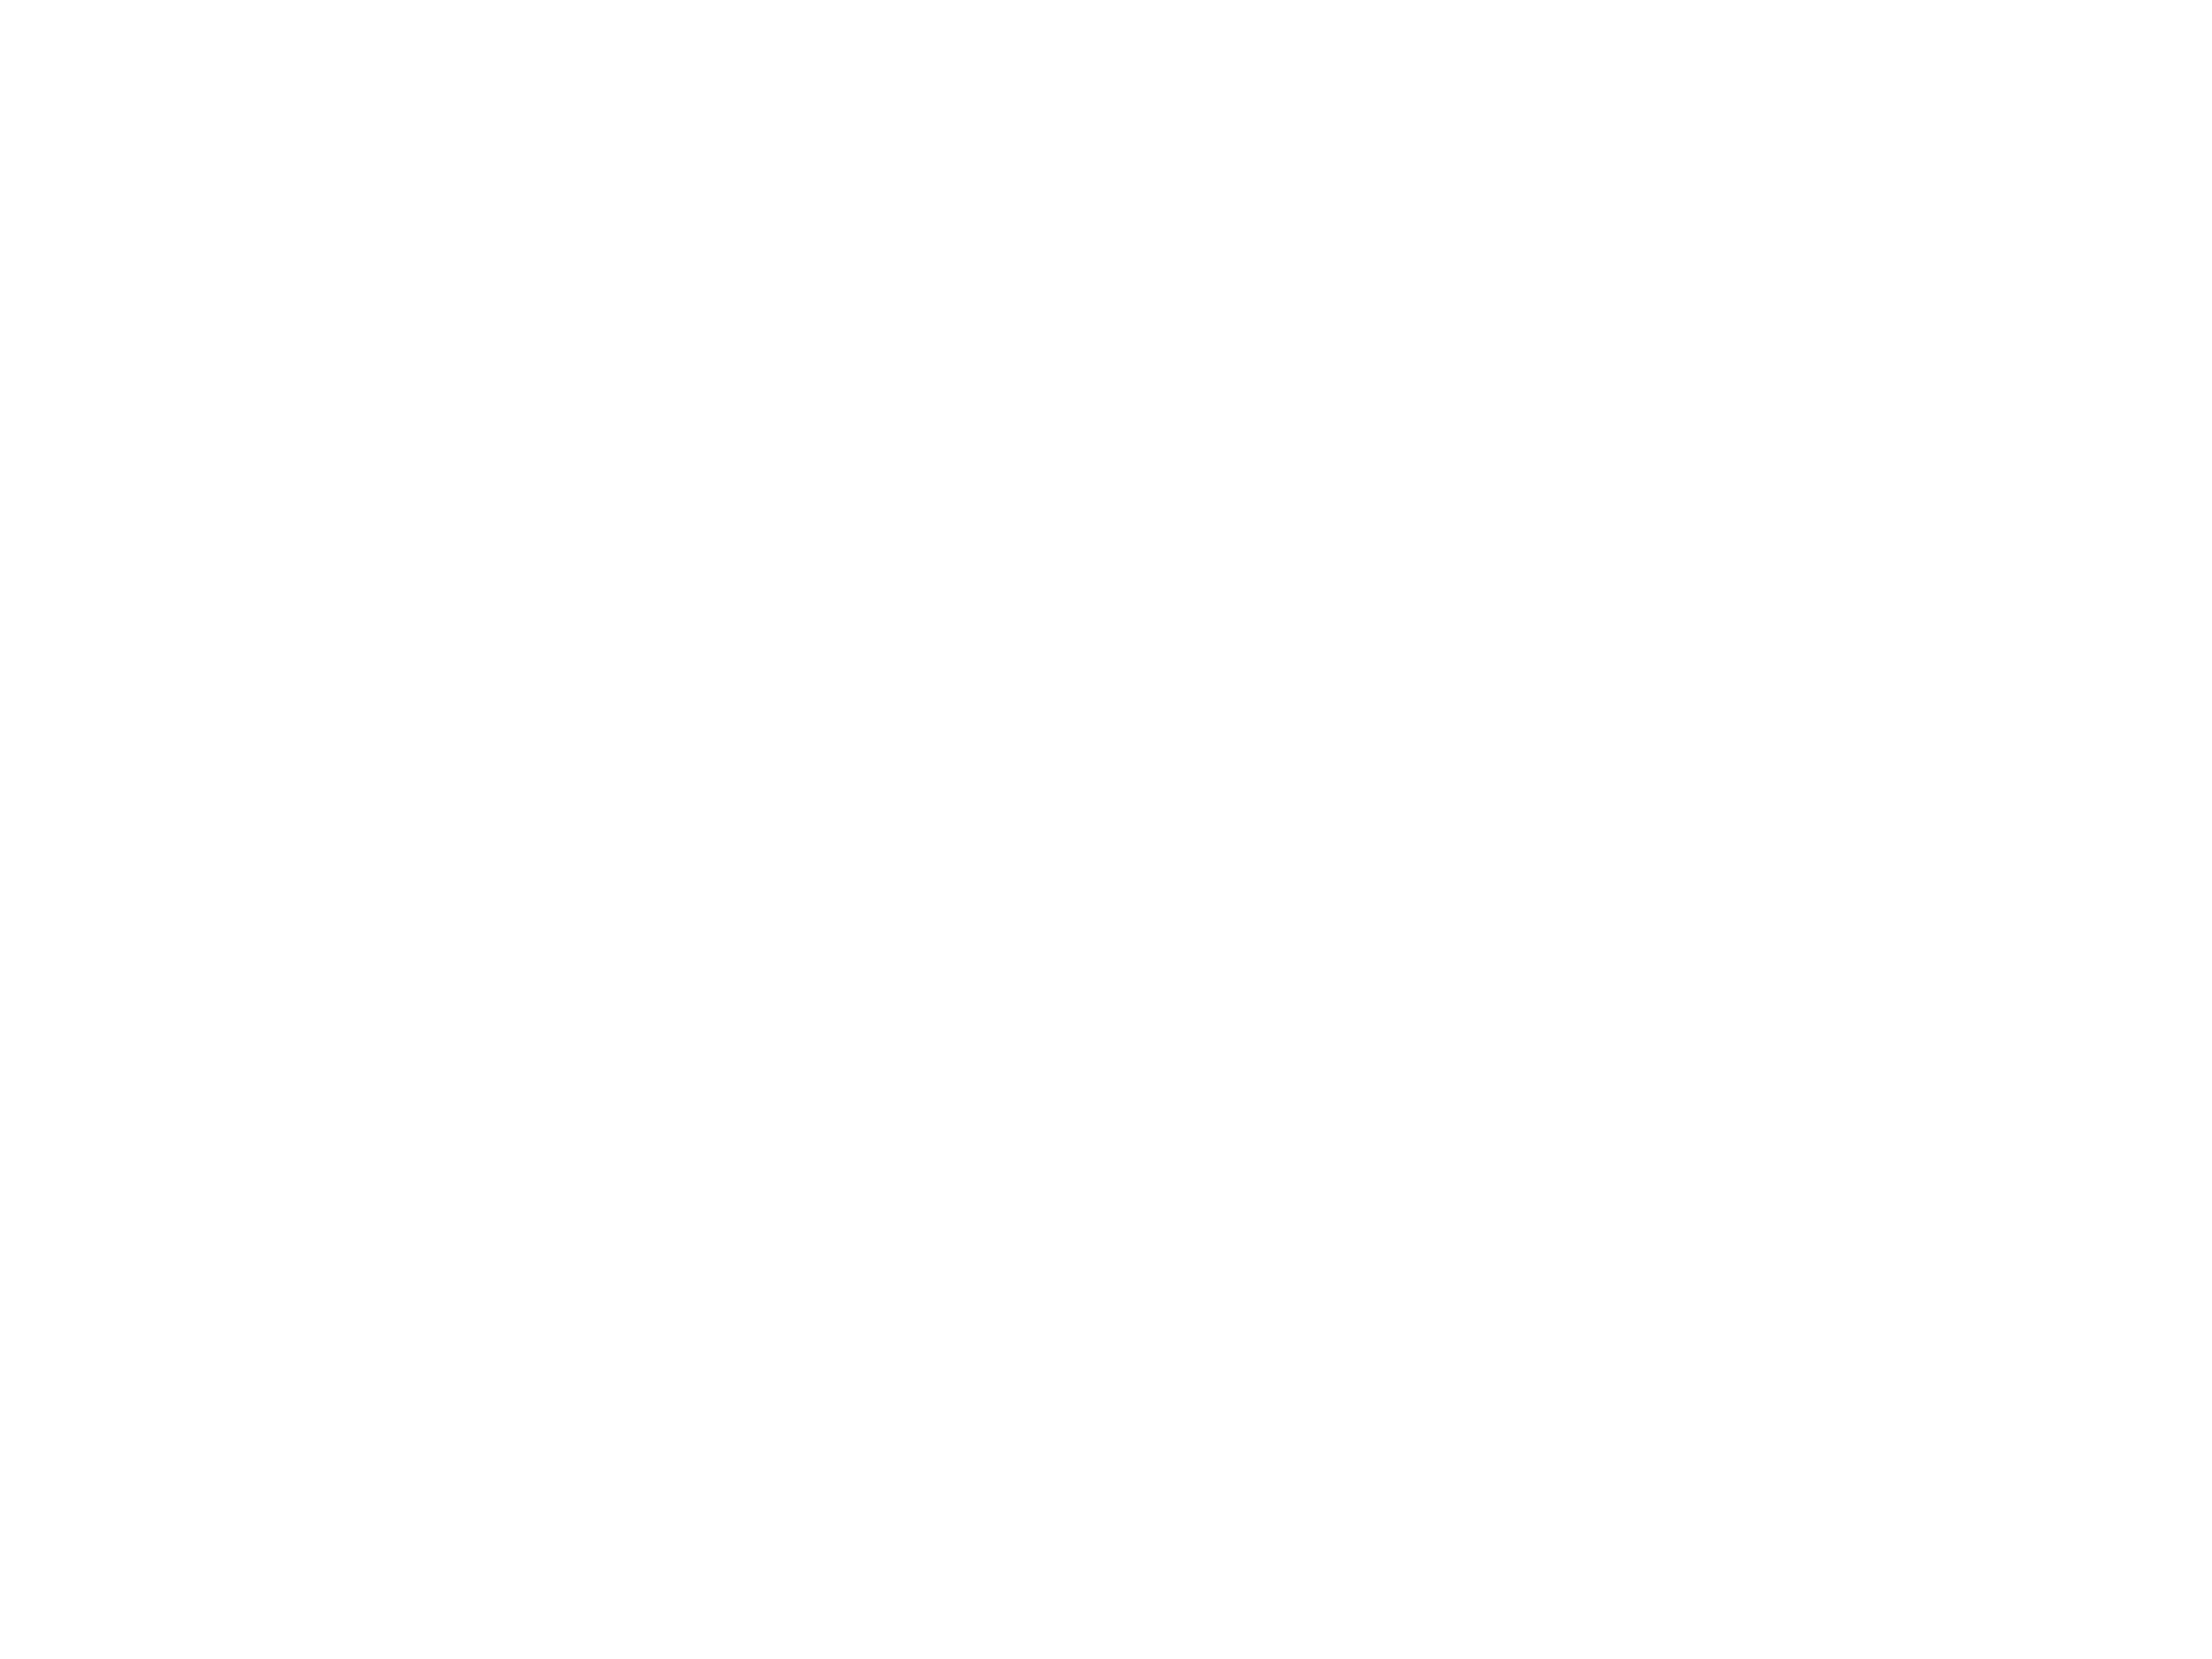 Electrolux Logo - Electrolux-logo-old-wordmark copy — The Communications Store